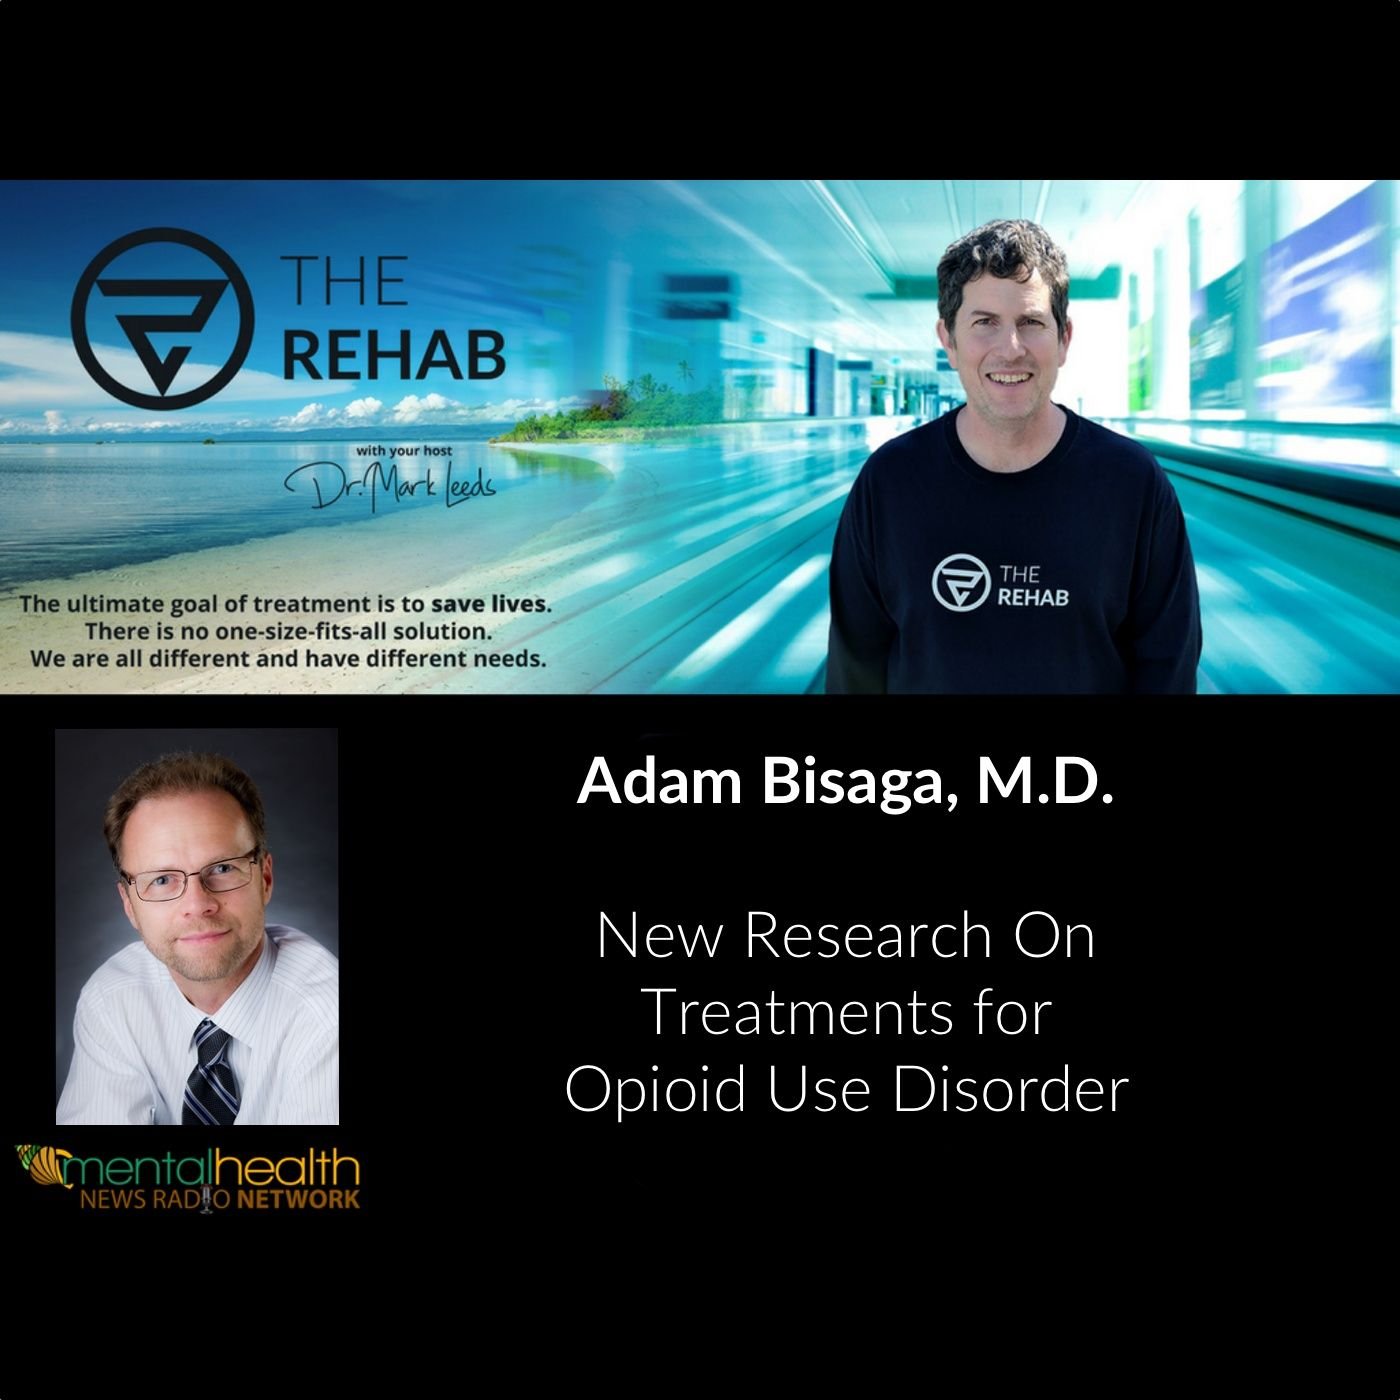 Adam Bisaga, M.D.: Promising New Research On Treatments for Opioid Use Disorder